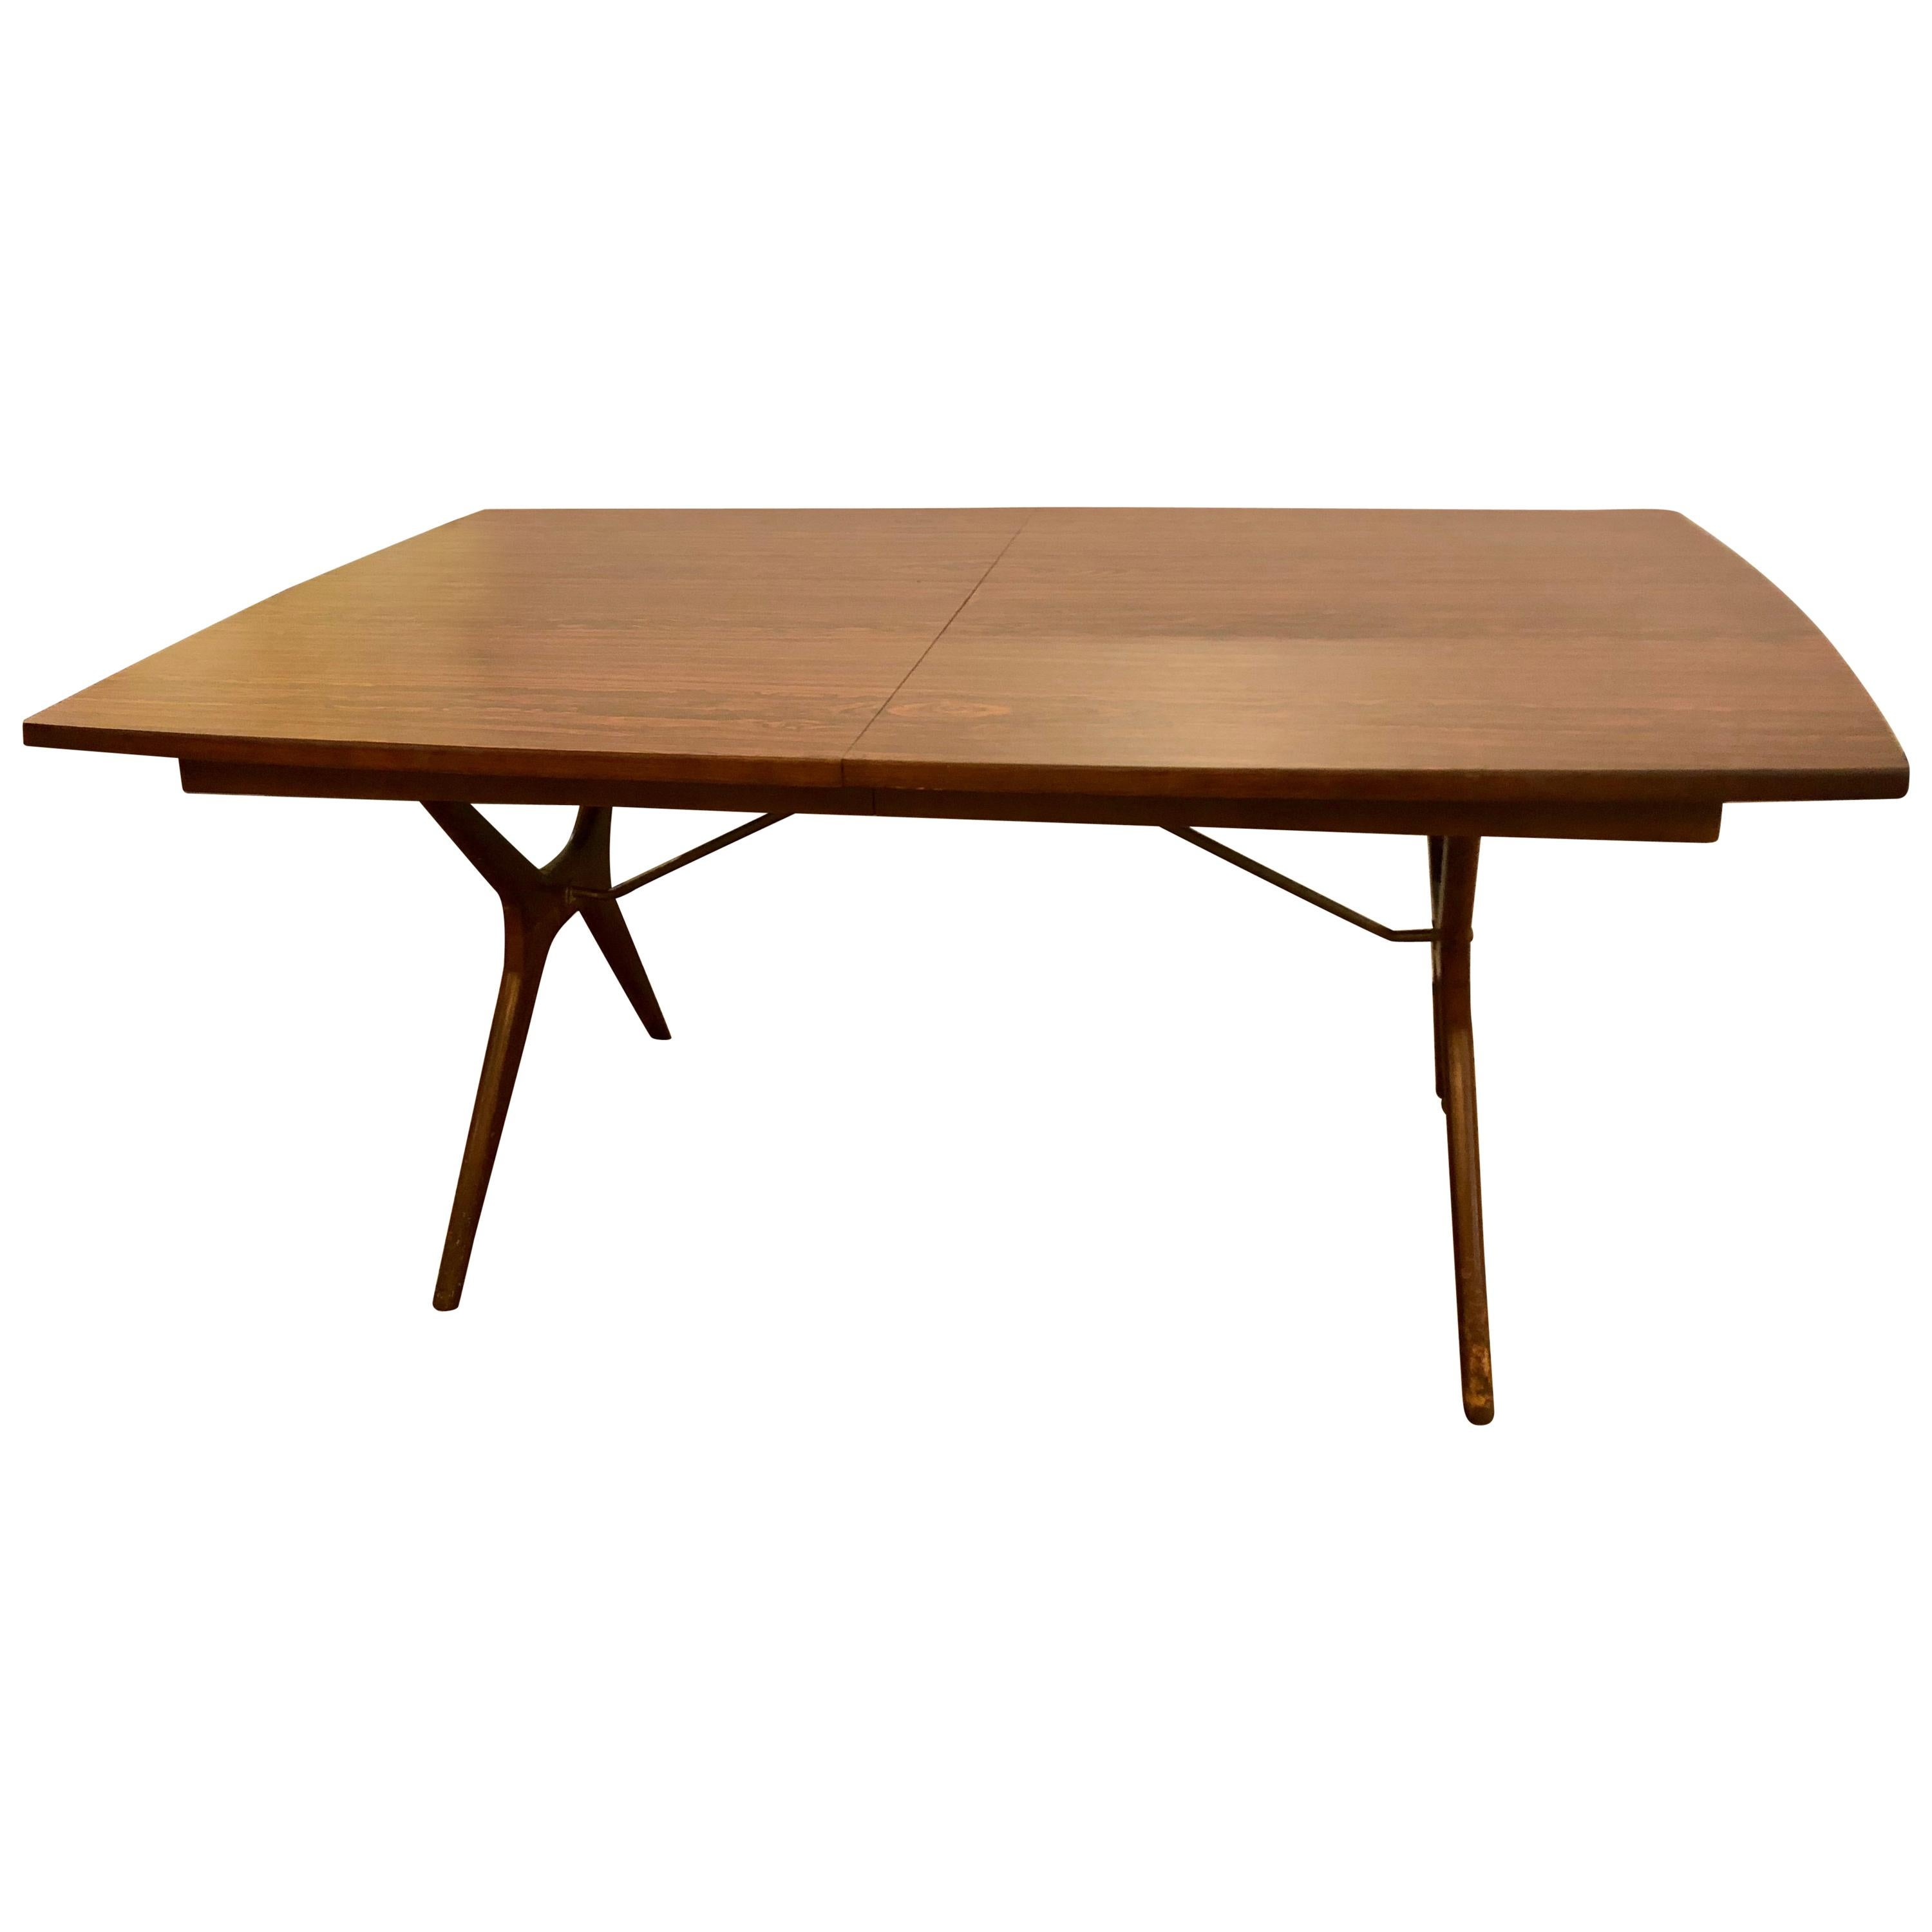 60s Dining Table For Twelve By Baker Furniture At 1stdibs